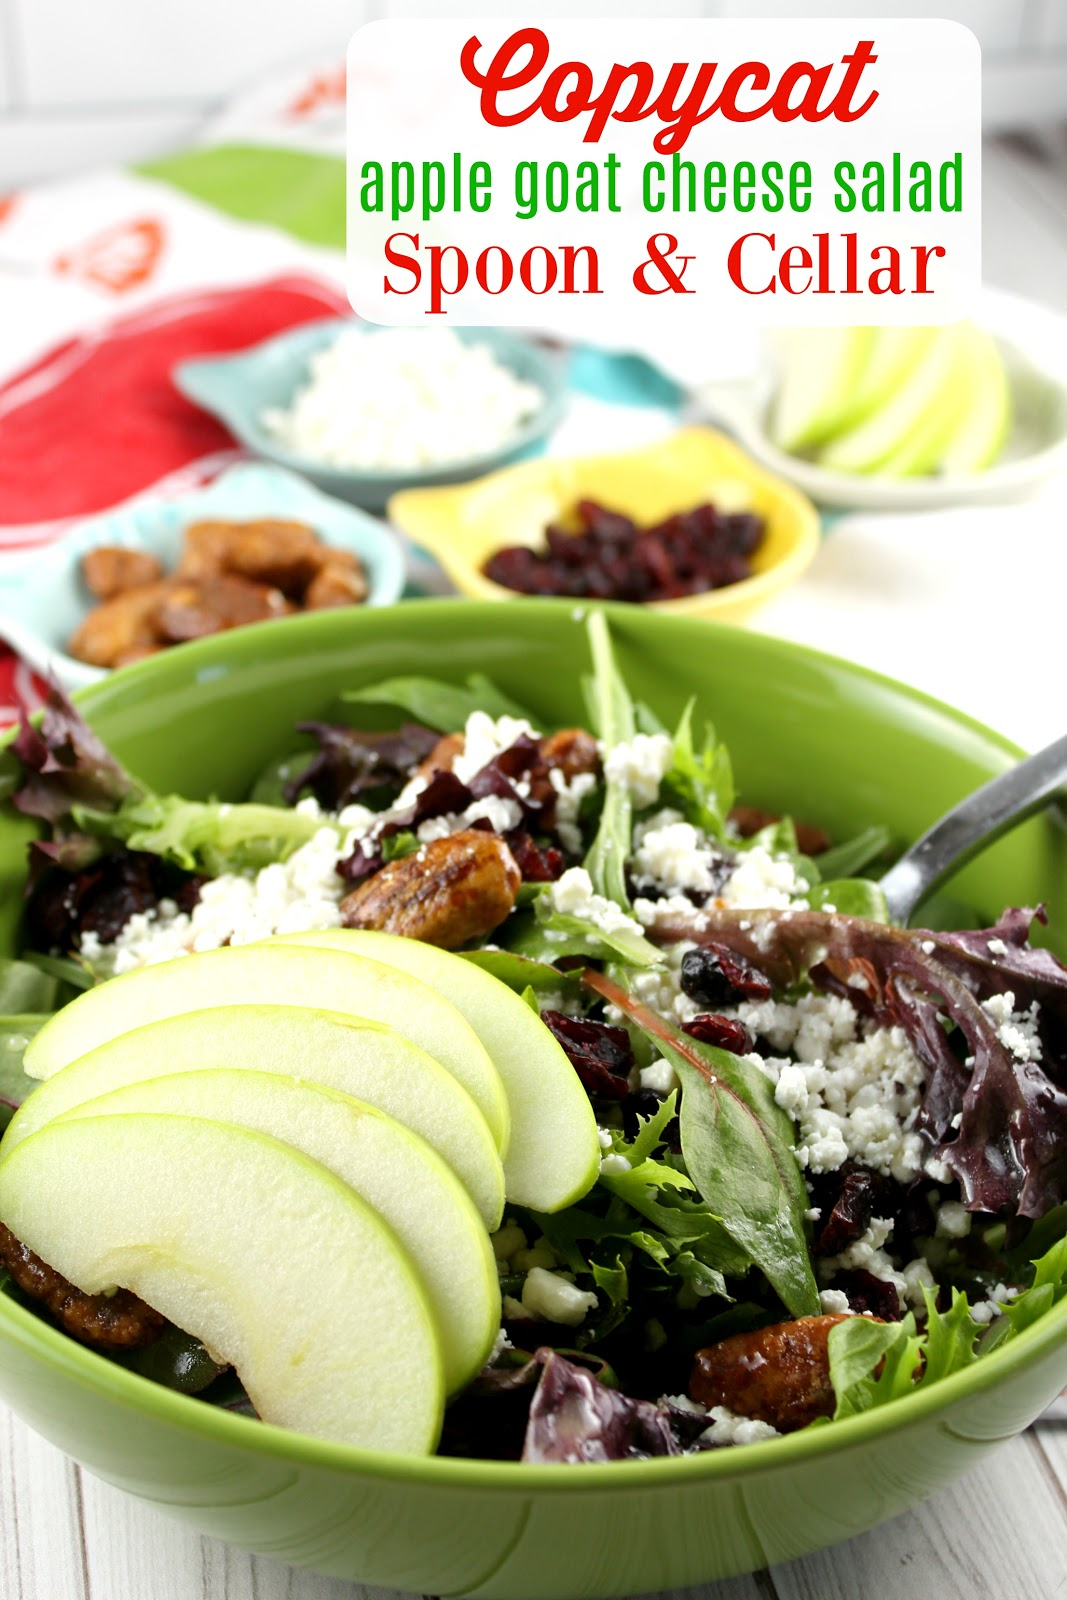 apple goat cheese salad recipe